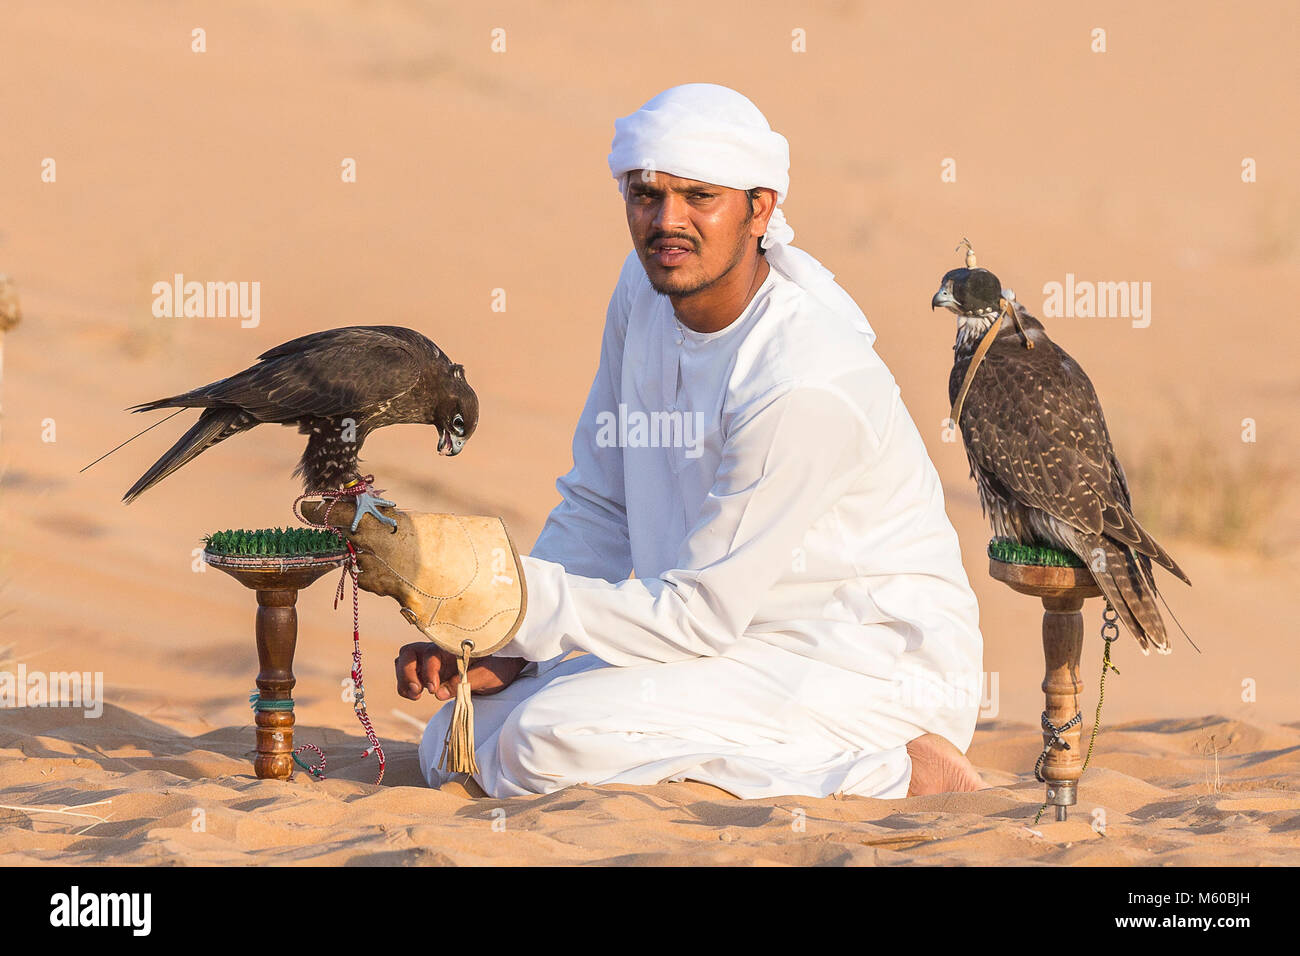 Saker Falcon (Falco cherrug). Falconer caring for trained birds on their blocks in the desert. Abu Dhabi - Stock Image